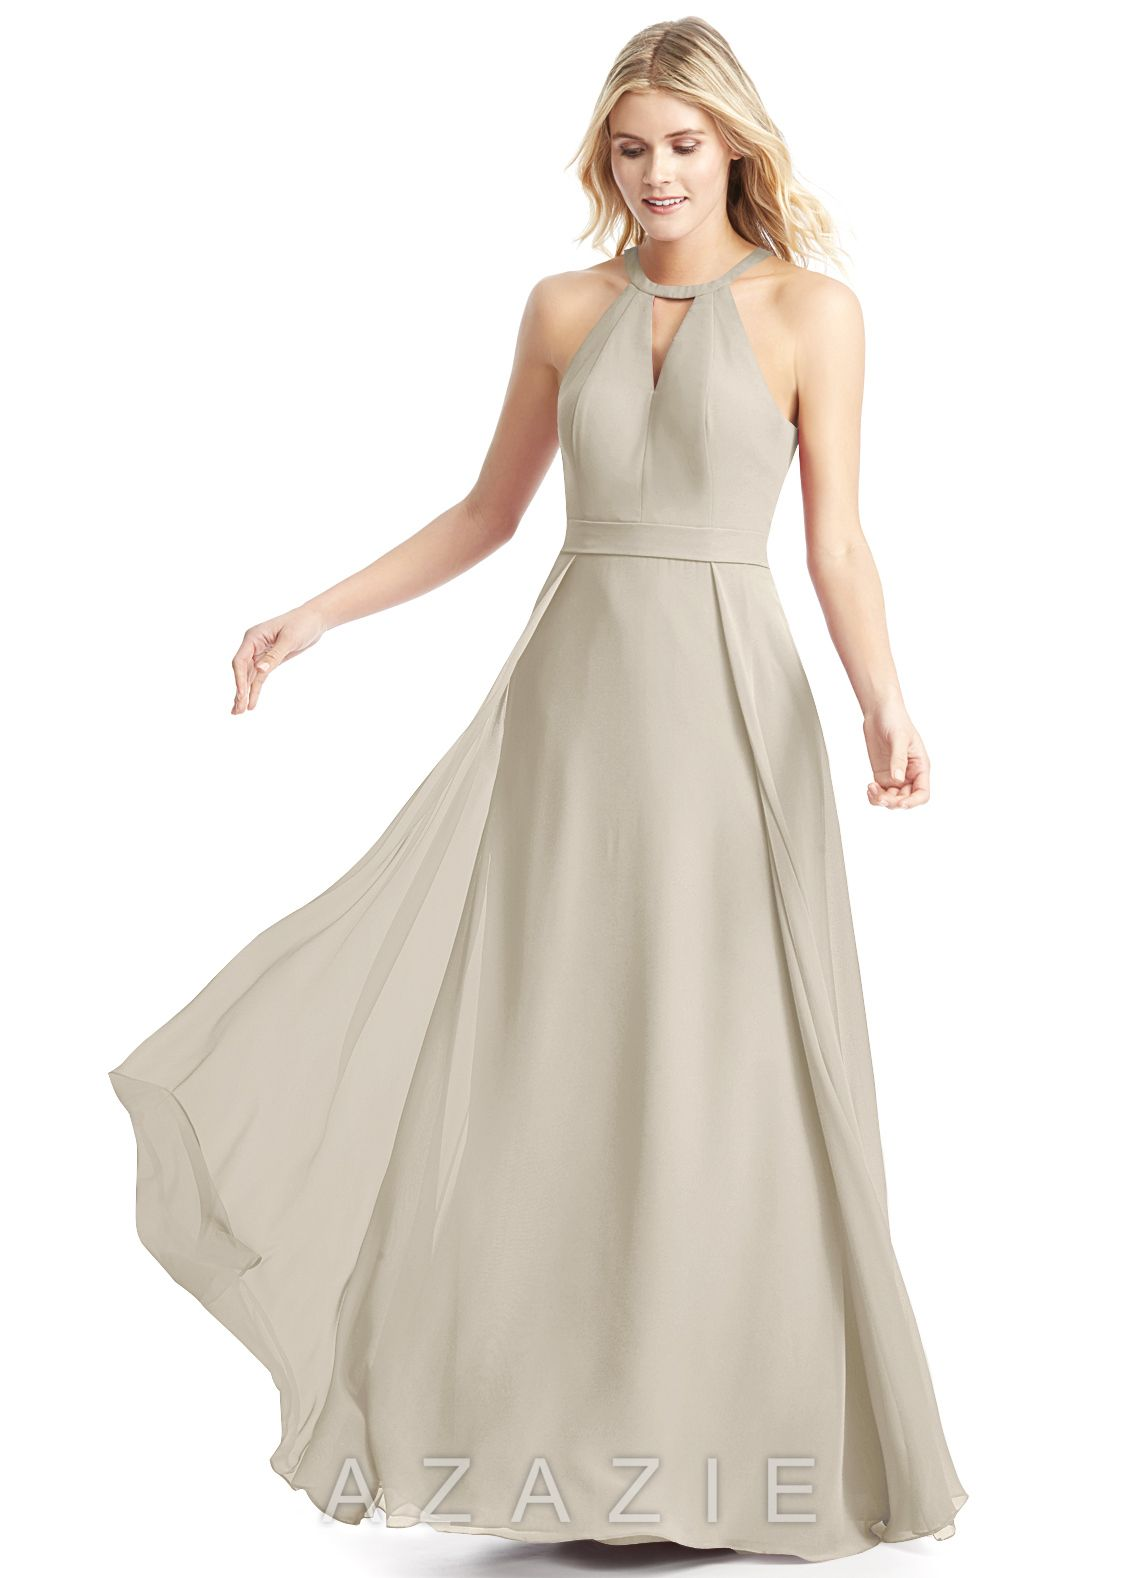 Taupe Colored Wedding Dresses - Cute Dresses for A Wedding Check ...